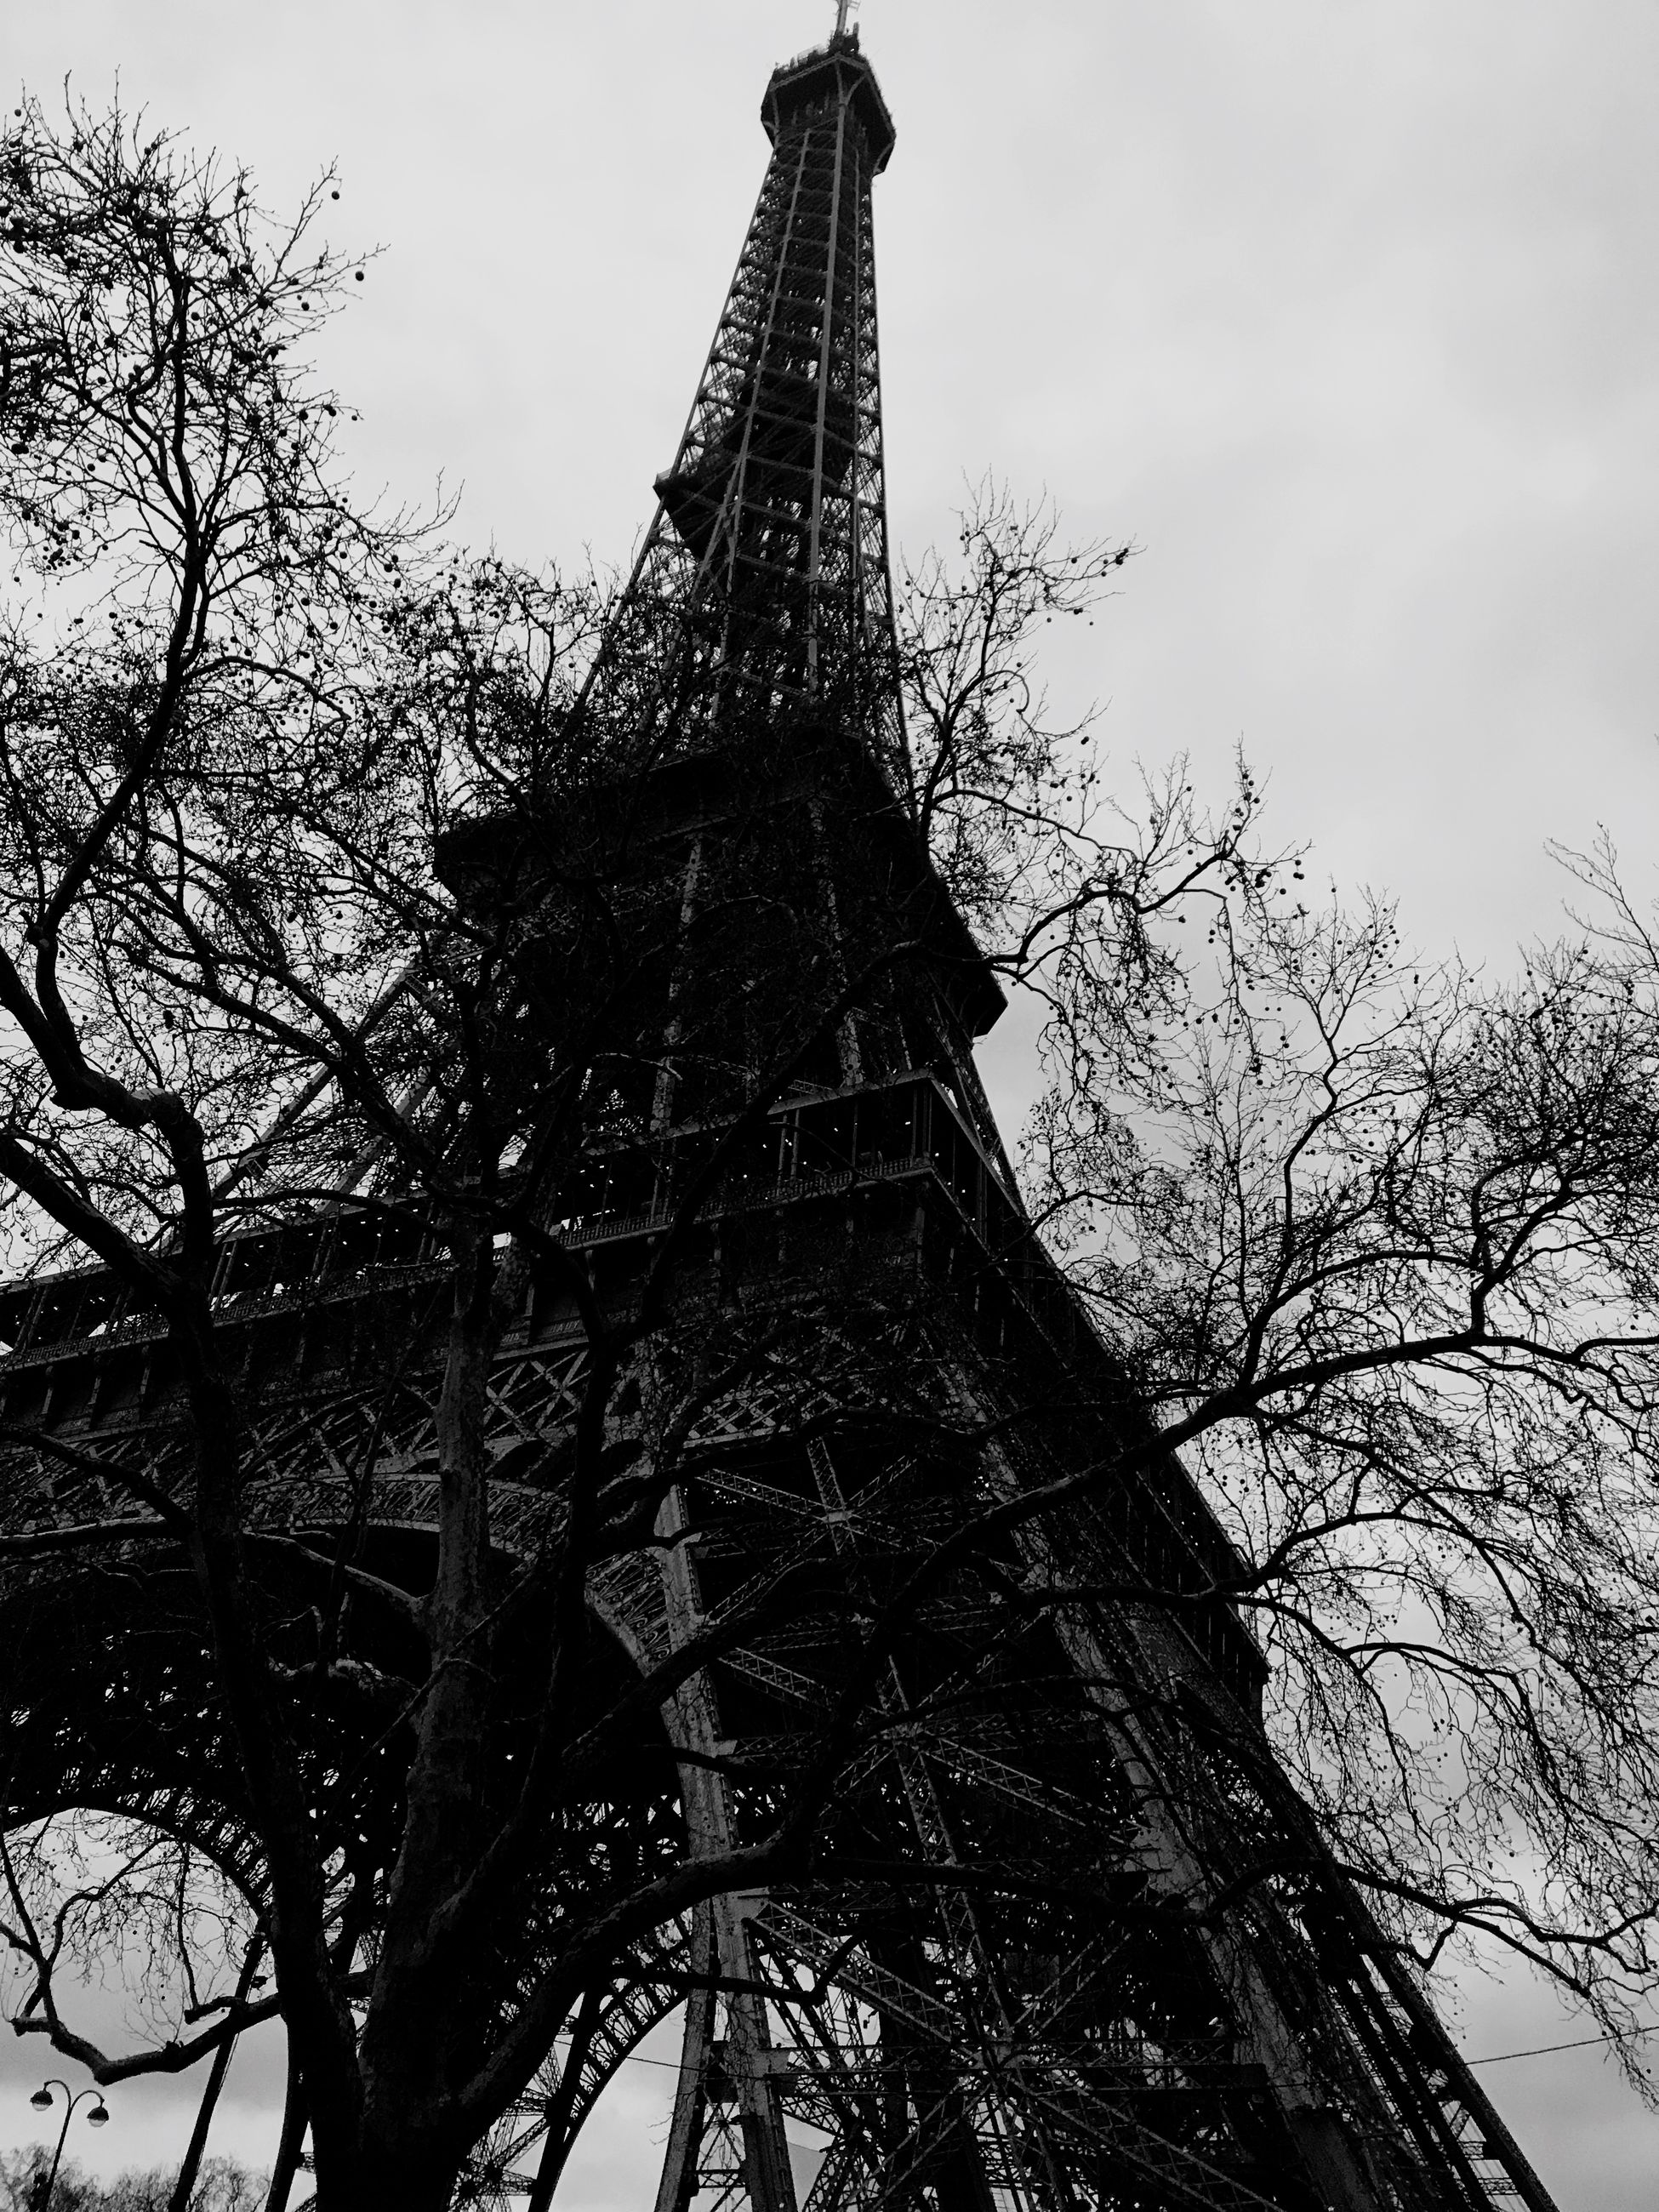 tower, architecture, built structure, low angle view, travel destinations, history, tall - high, tree, tourism, travel, architectural feature, bare tree, monument, outdoors, metal, sky, building exterior, day, tall, branch, no people, ancient civilization, city